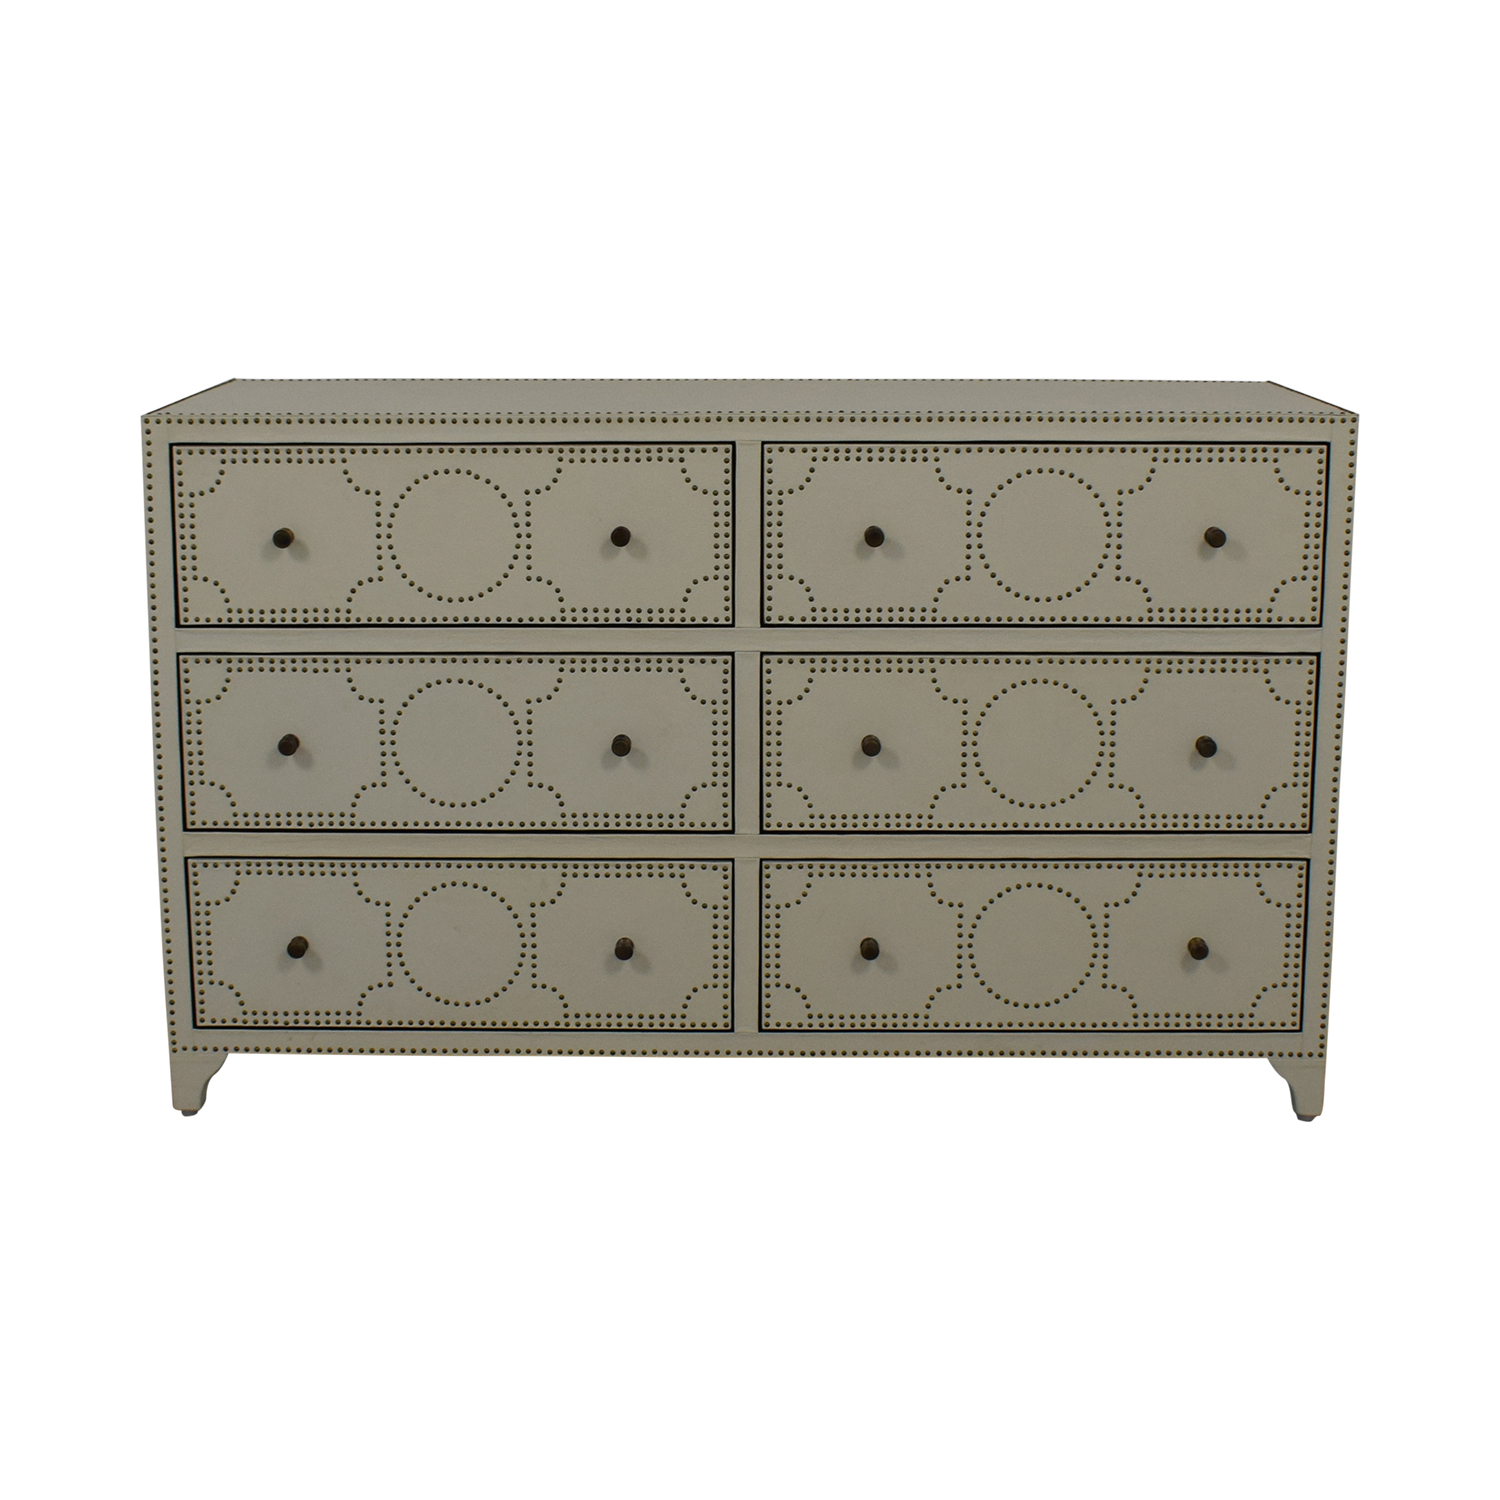 buy Restoration Hardware Nailhead Upholstered Dresser Restoration Hardware Storage